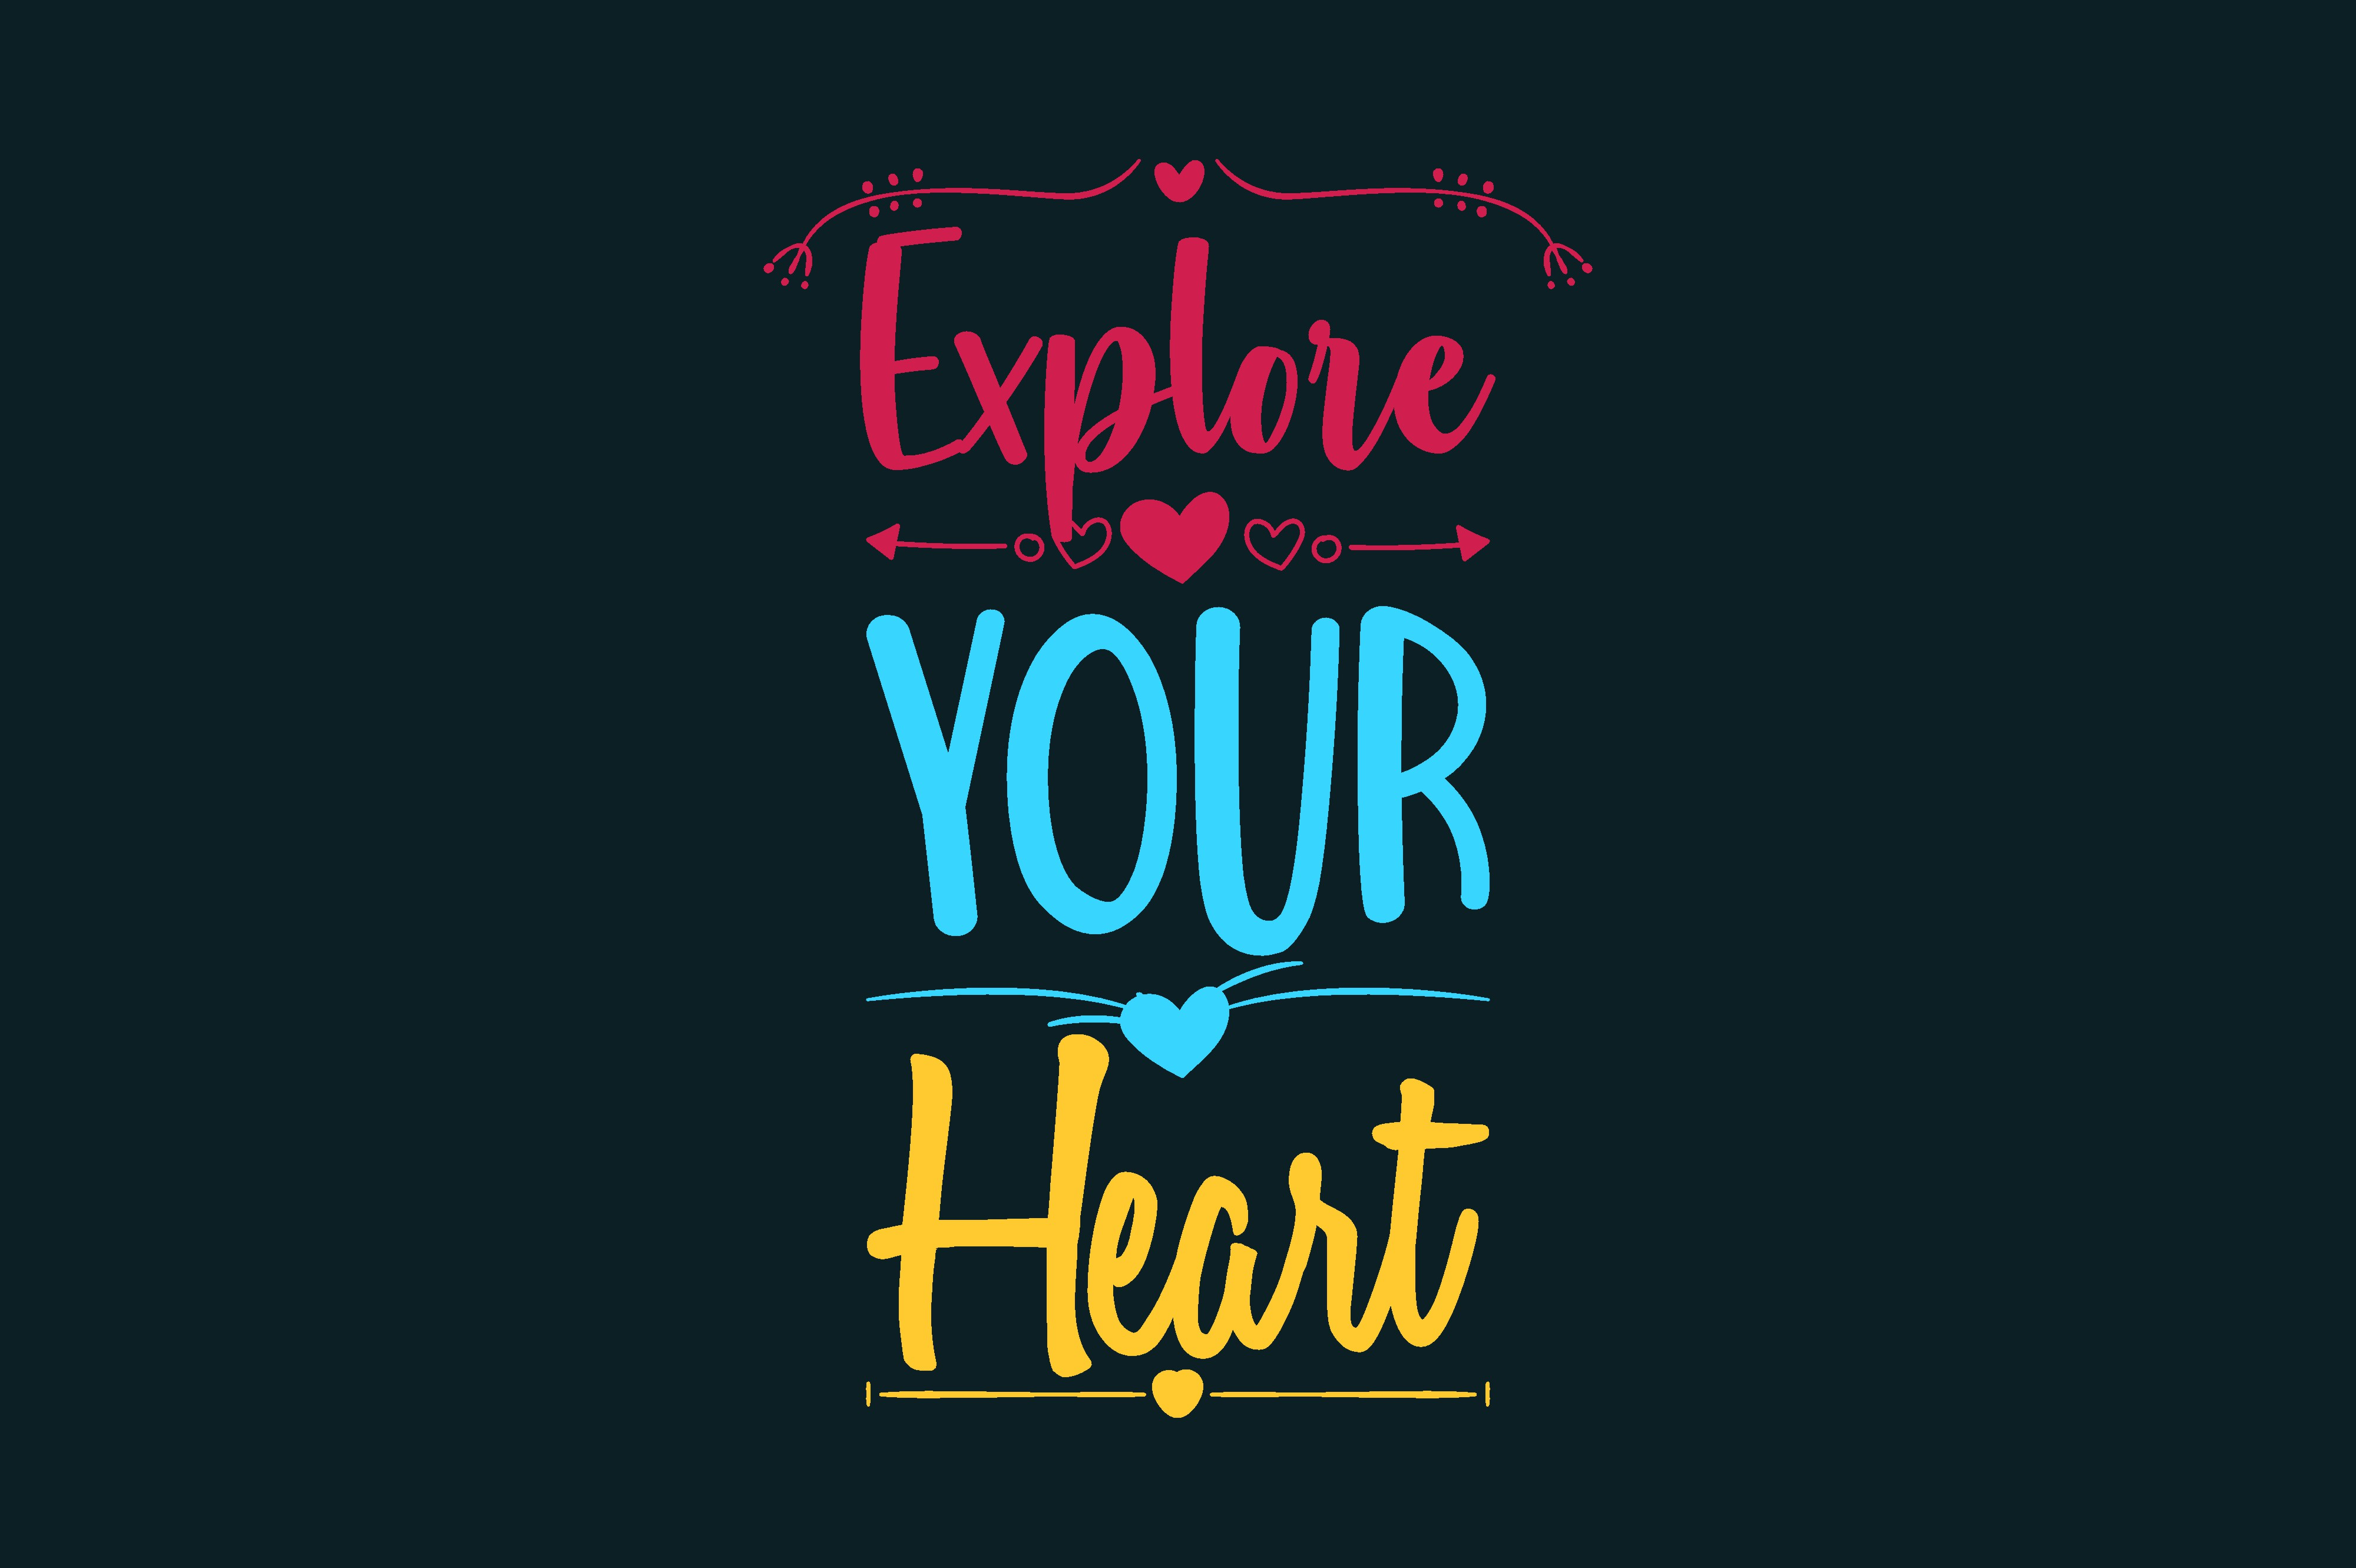 Download Free Explore Your Heart Graphic By Chairul Ma Arif Creative Fabrica for Cricut Explore, Silhouette and other cutting machines.